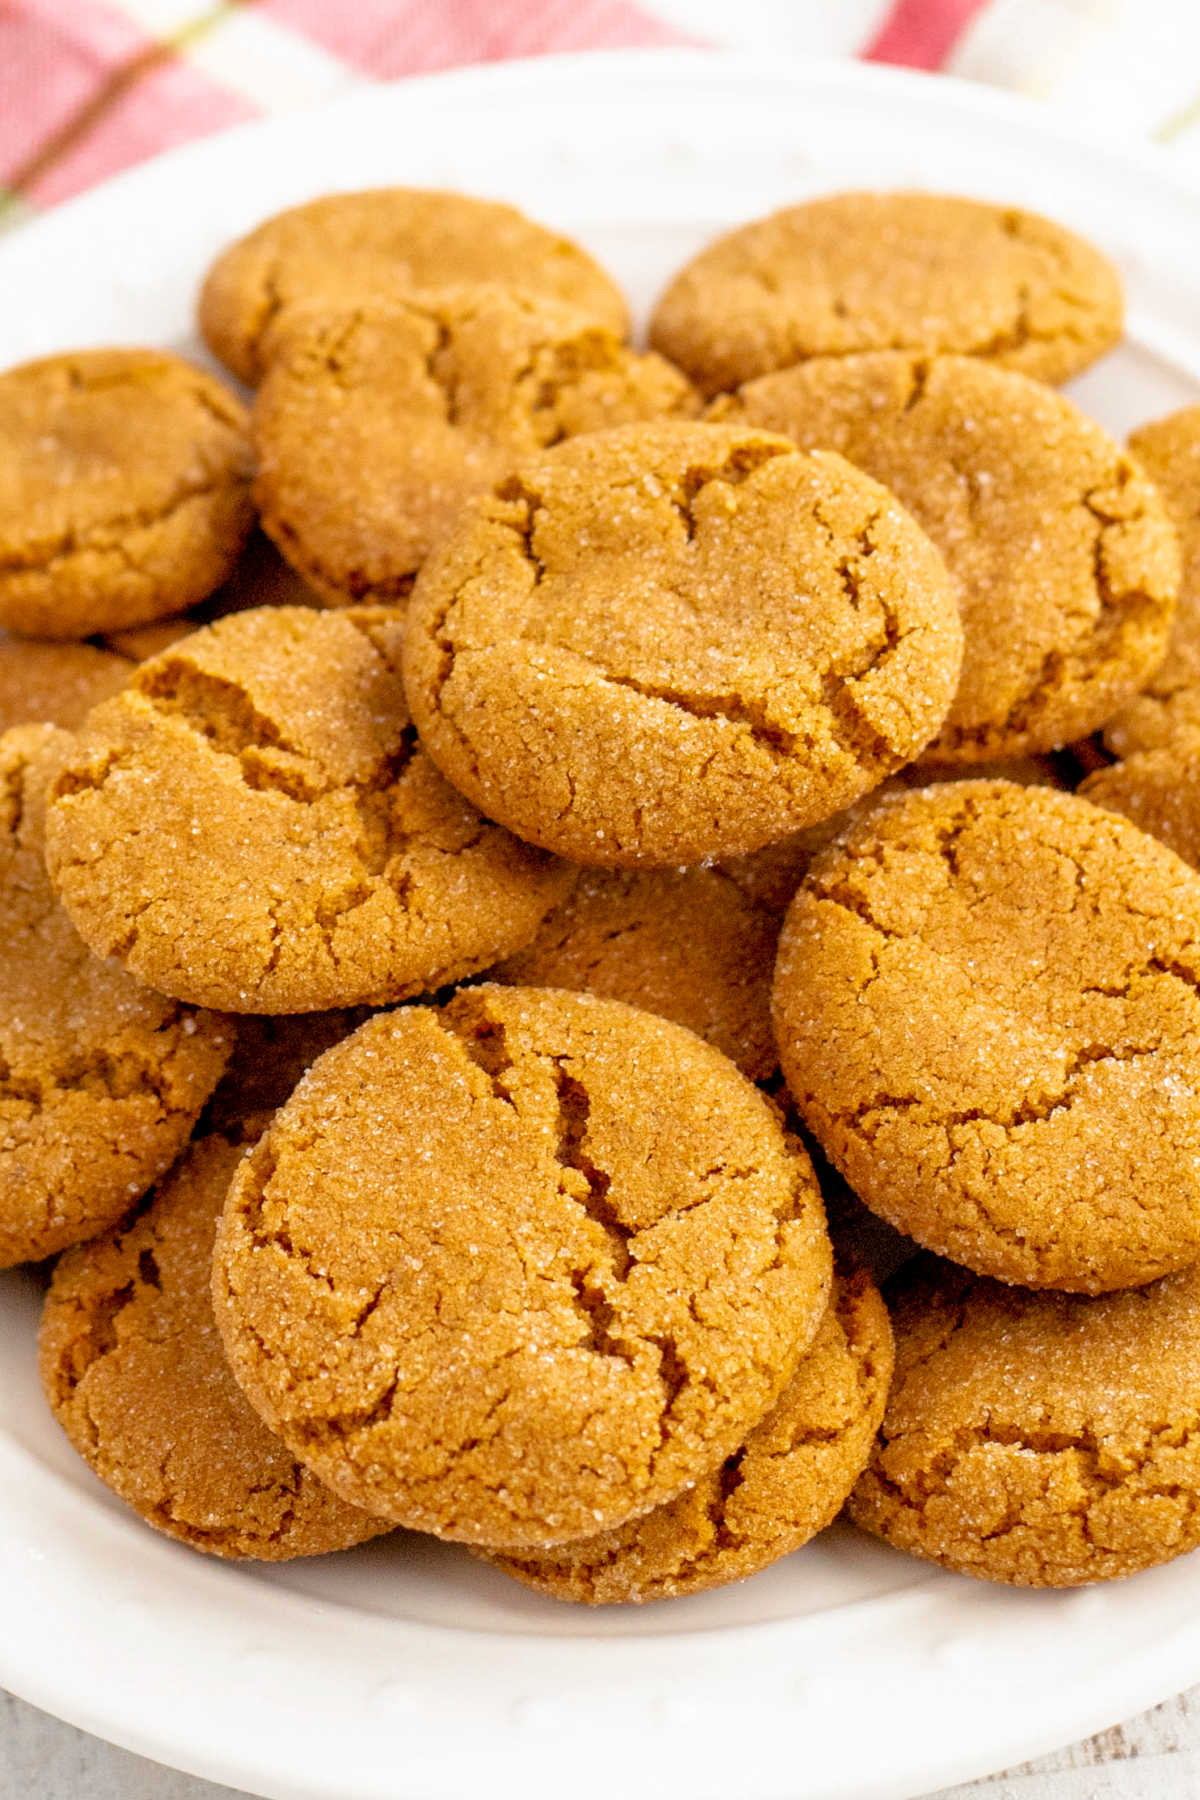 Whether you call them Gingersnaps, Ginger Snaps, Ginger Doodles, Ginger Biscuits, or Ginger Nut, this Gingersnap Cookie Recipe is just plain good! via @foodfolksandfun